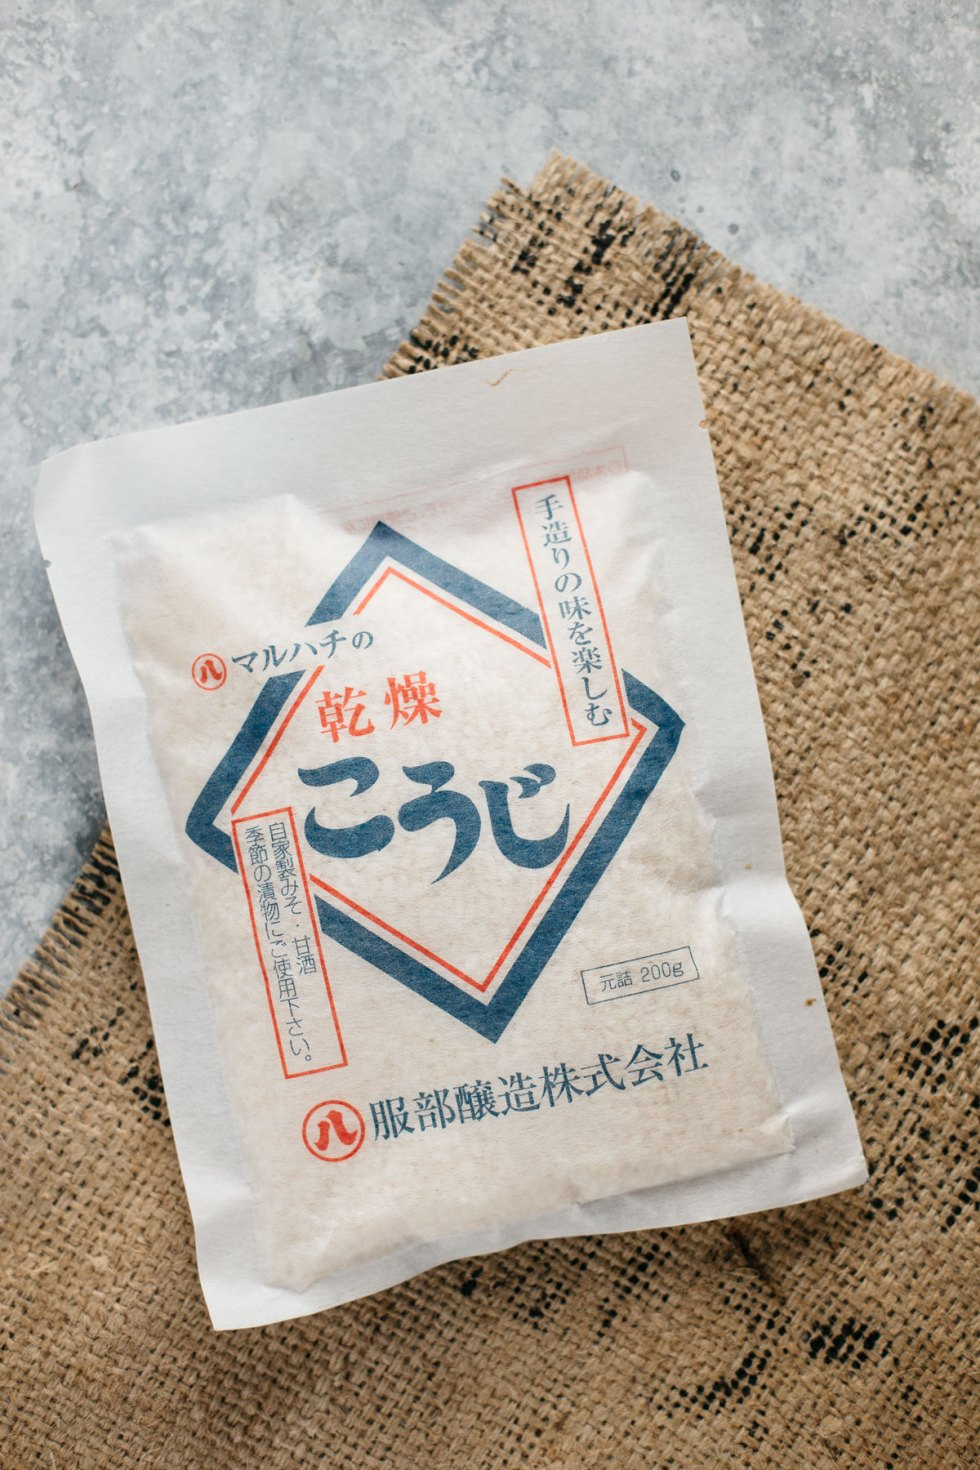 a packet of dry koji